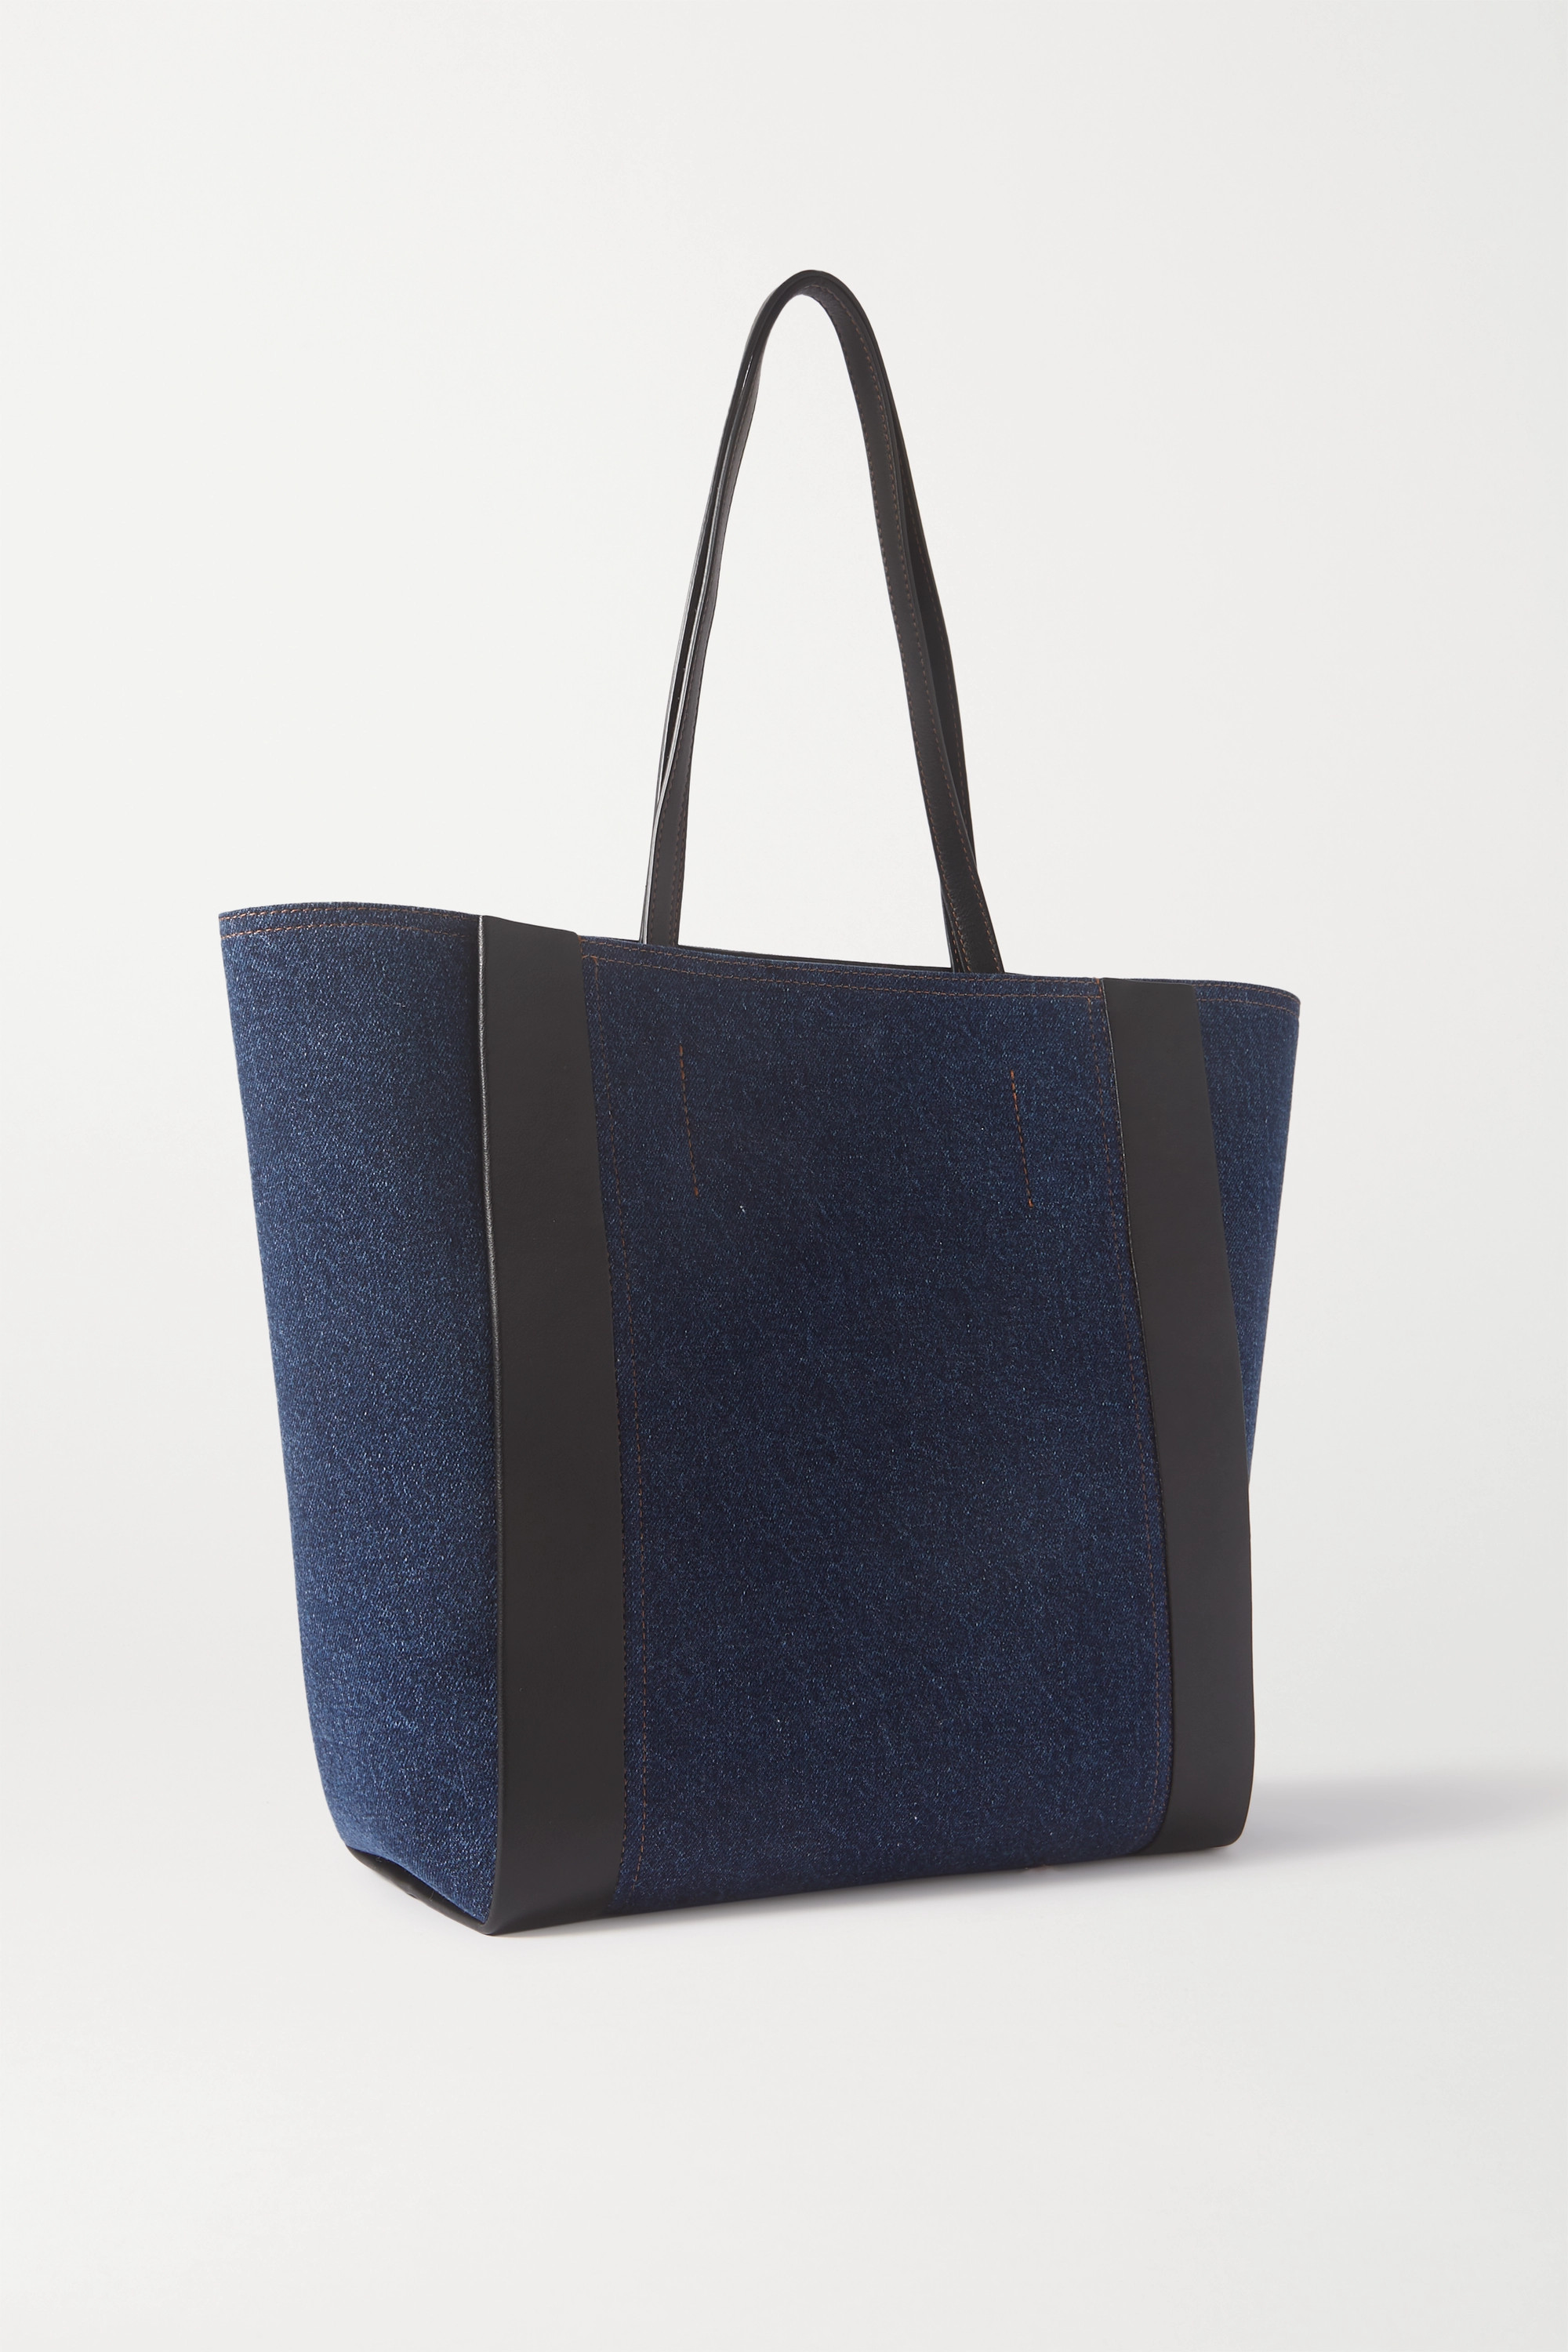 ALEXANDER MCQUEEN Signature leather-trimmed printed denim tote